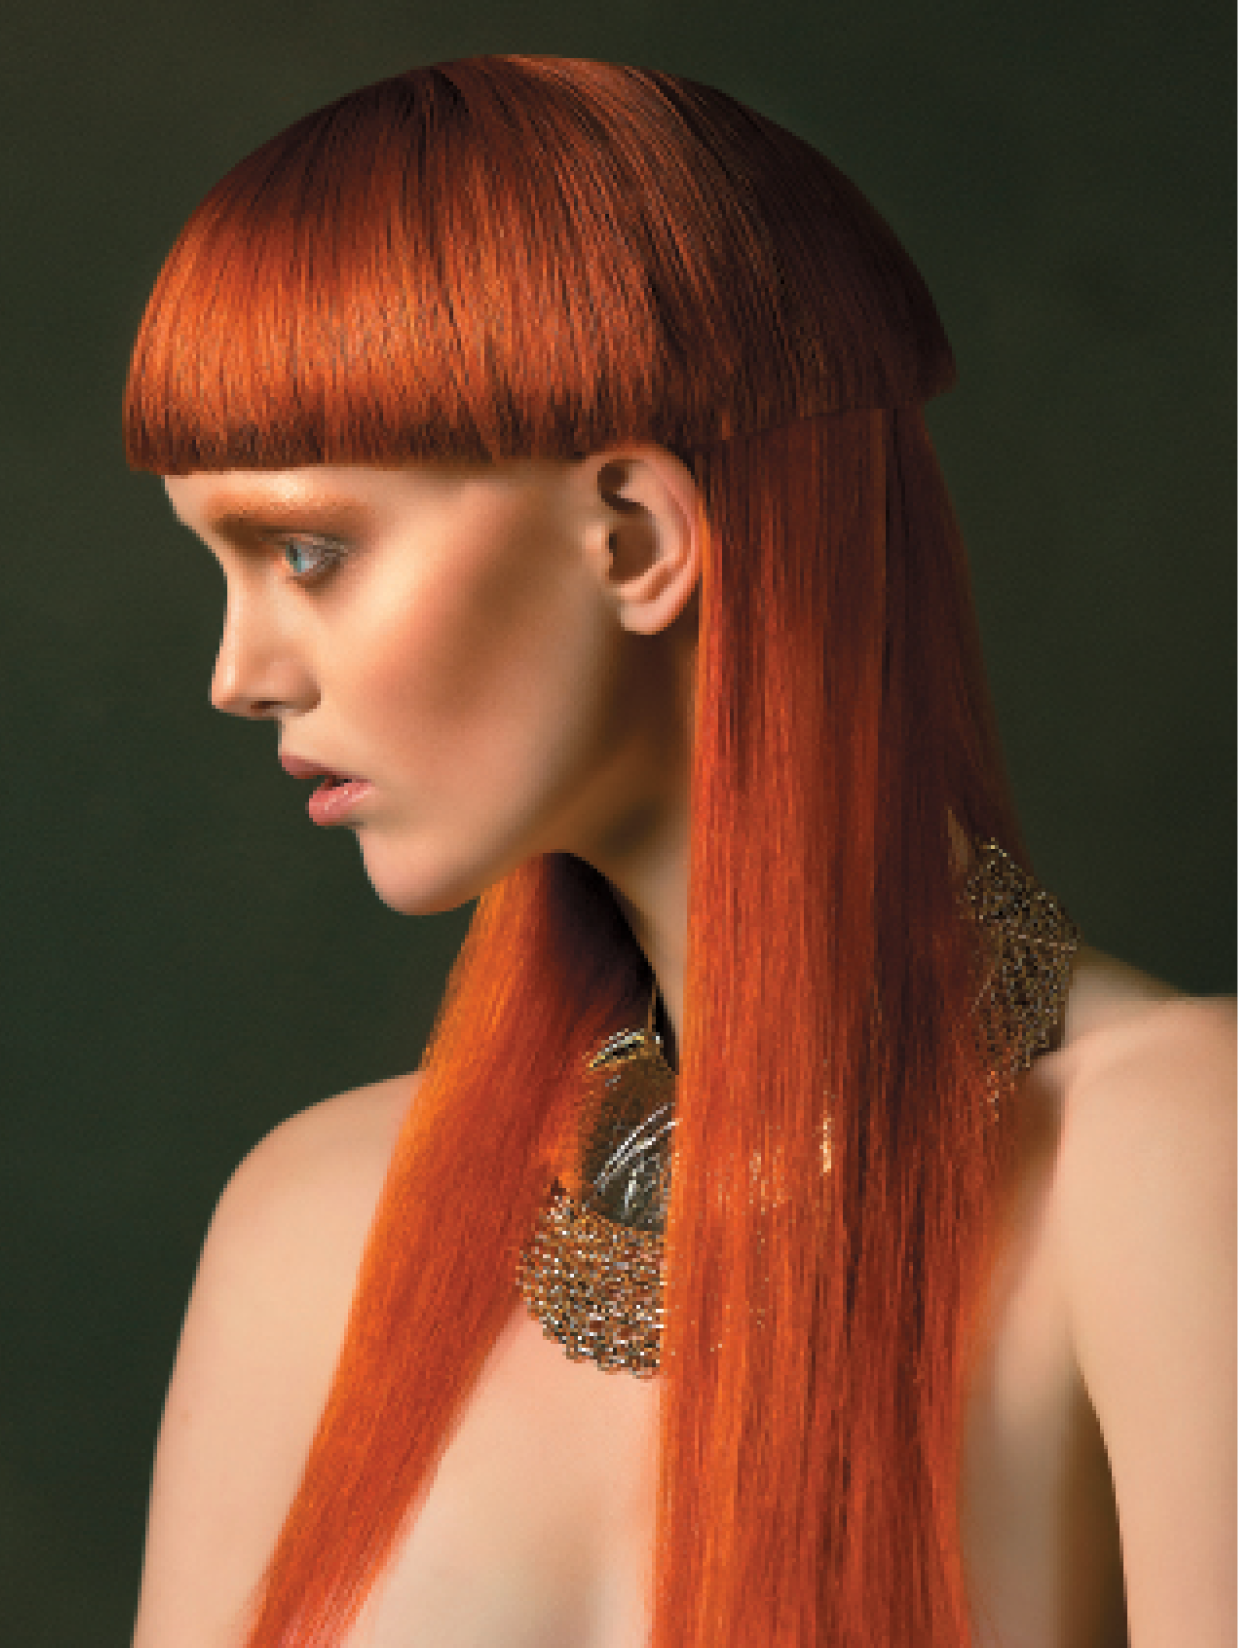 Using a comb, Vanessa Whitmarsh took half the hair 45 degrees above the ear and cut it with clippers. She continued cutting around the head, including the fringe. For a smooth finish, she used Aveda Brilliant Spray On Shine.